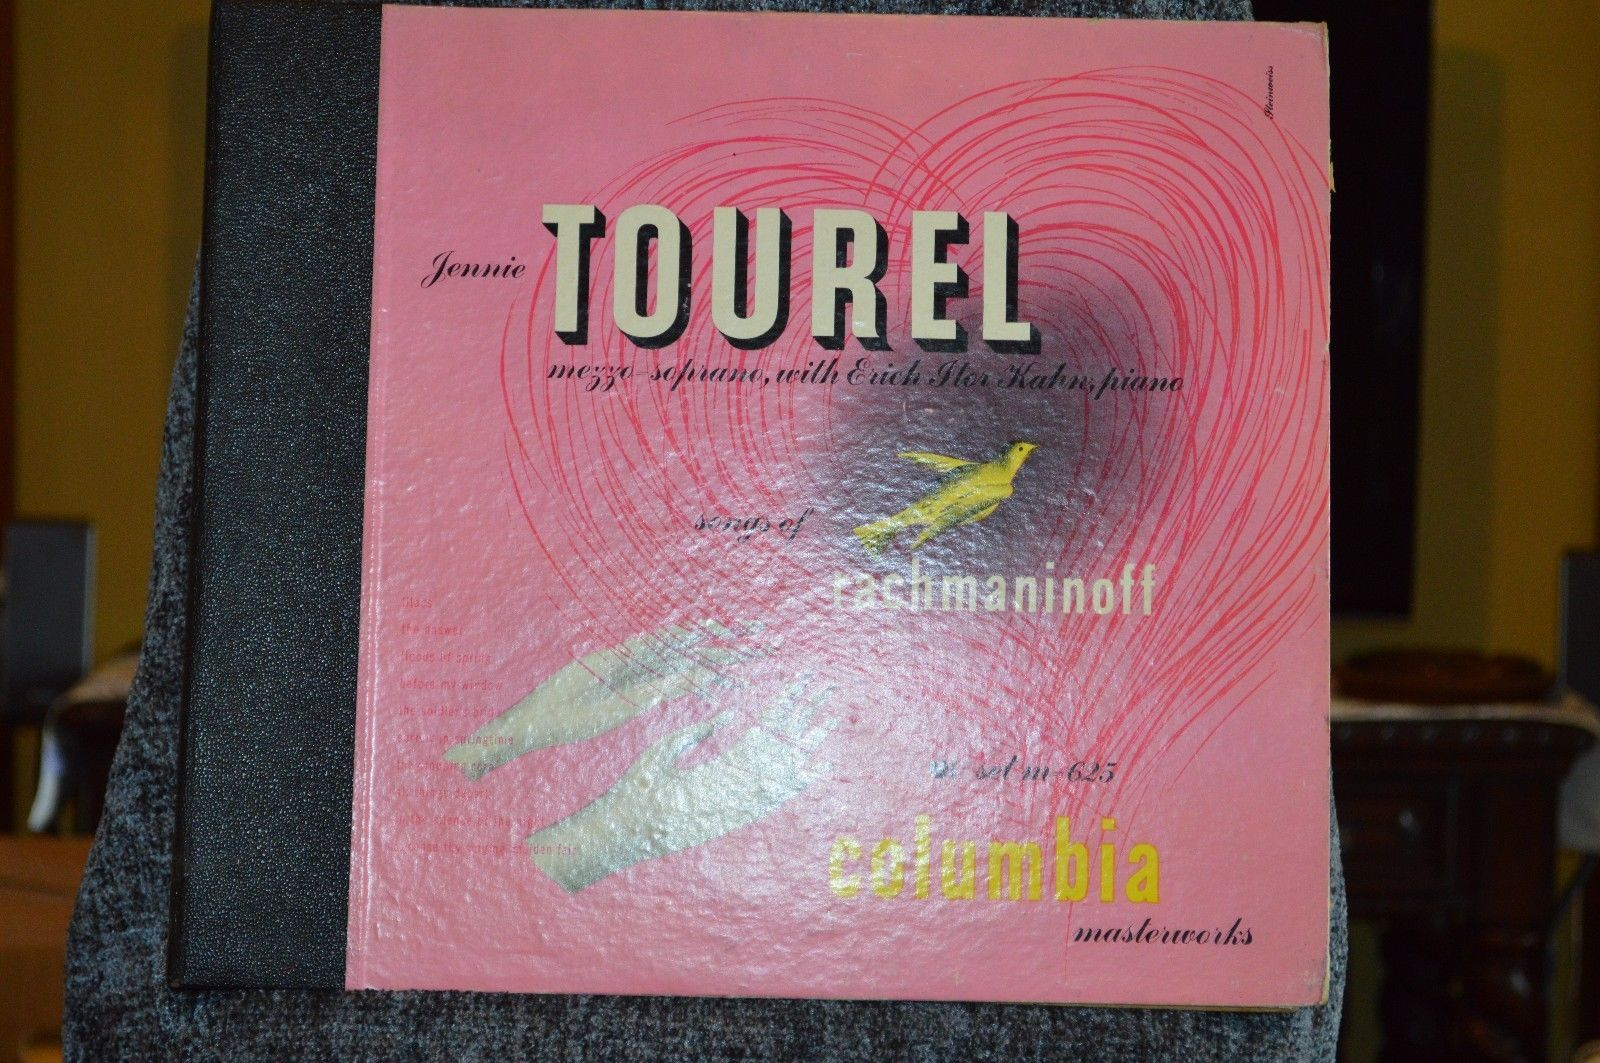 Jennie Tourel, Songs of rachmaninoff, Vinyl set